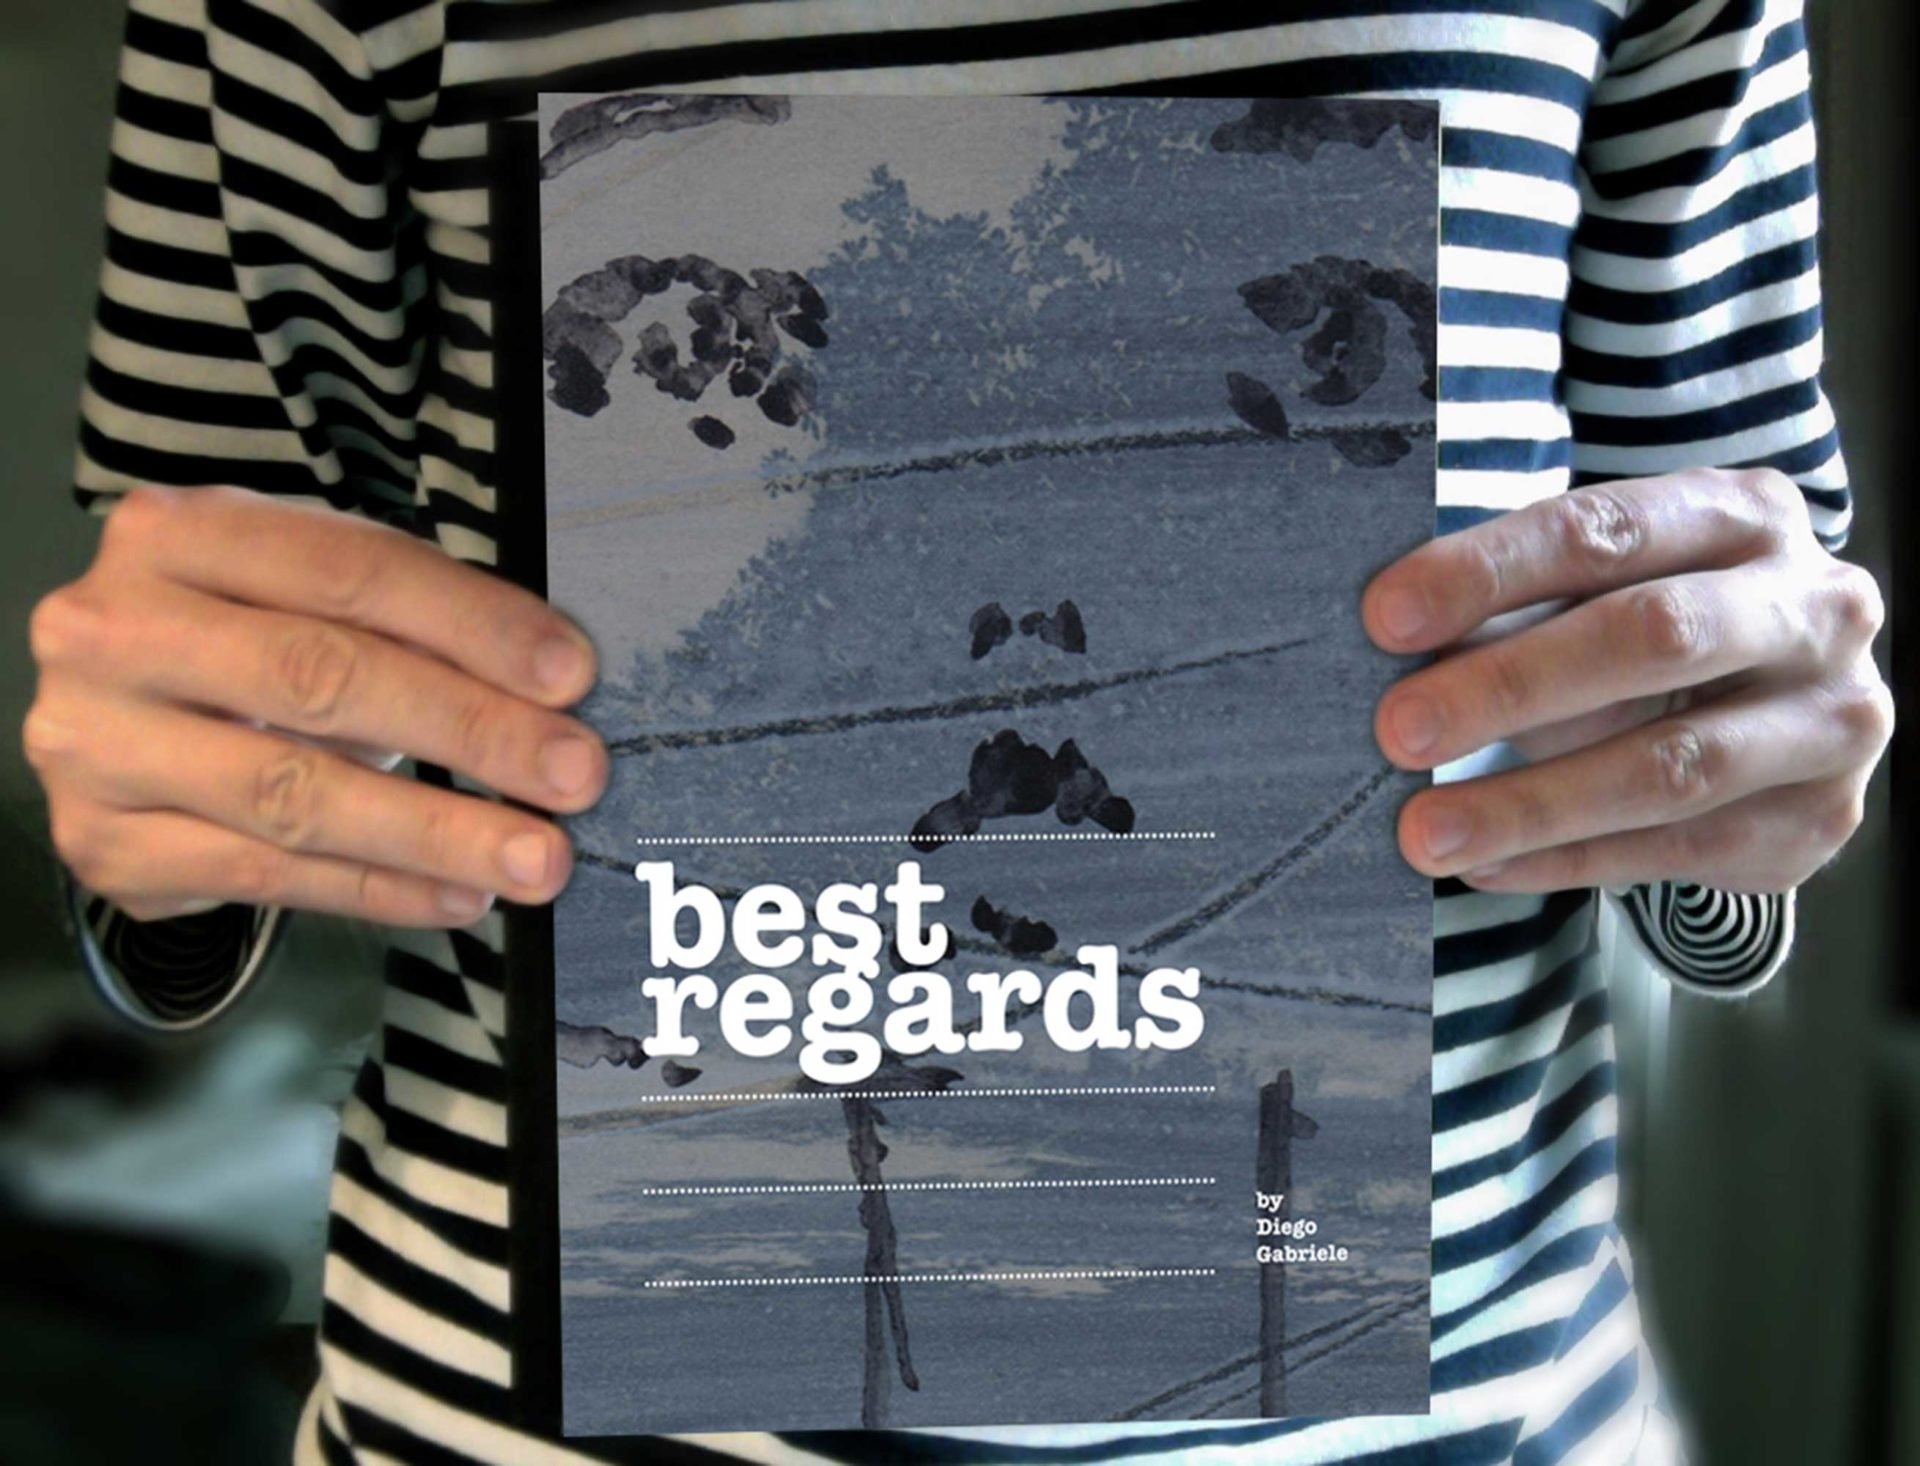 Best Regards Artbook e libro illustrato per Adulti di Diego Gabriele